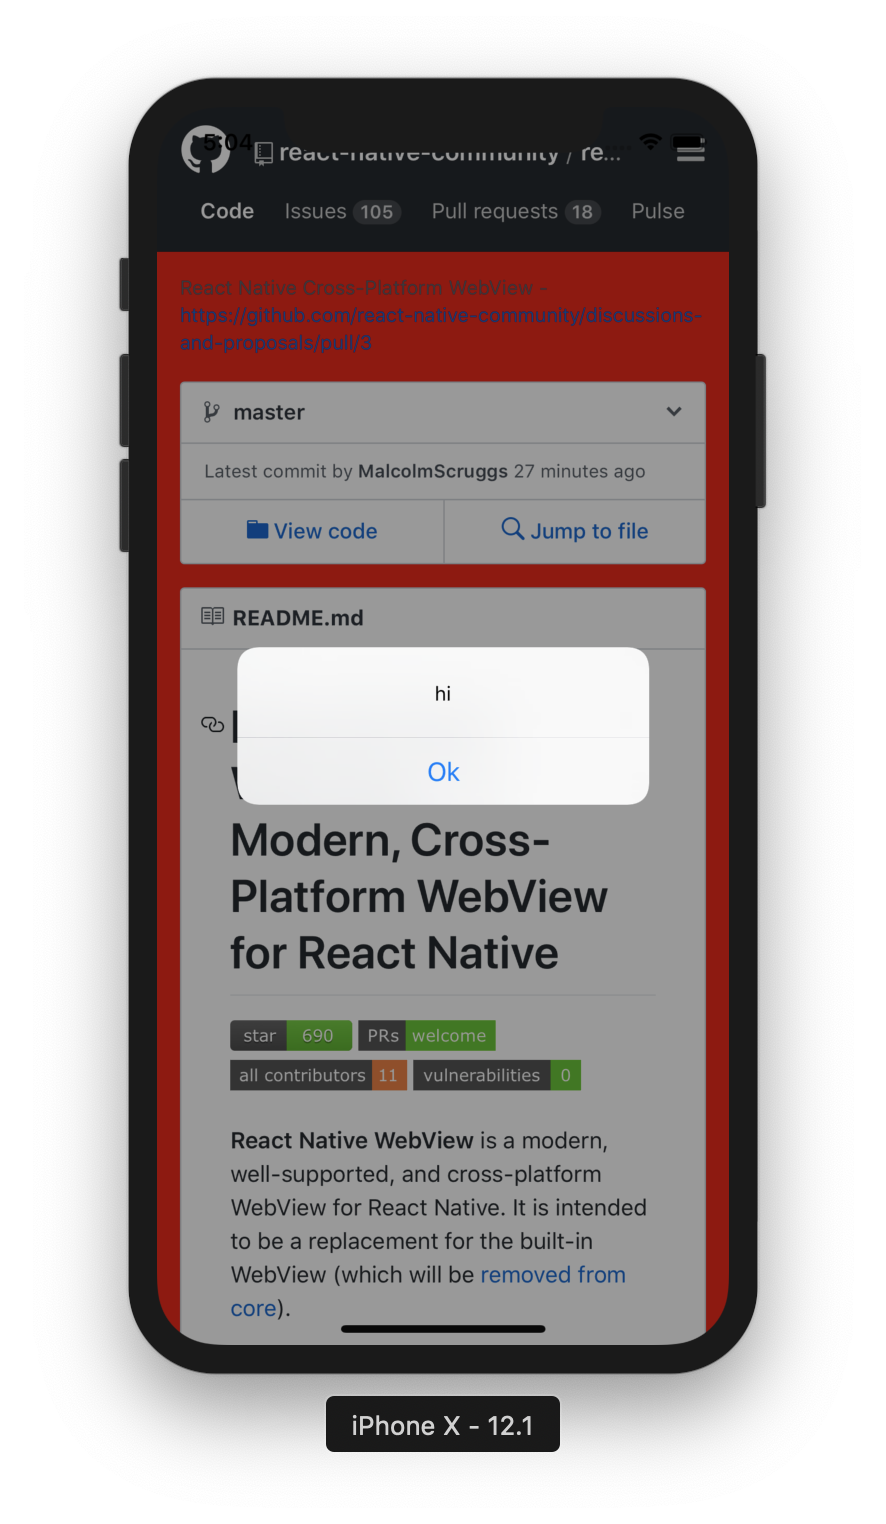 react-native-webview/Guide md at master · react-native